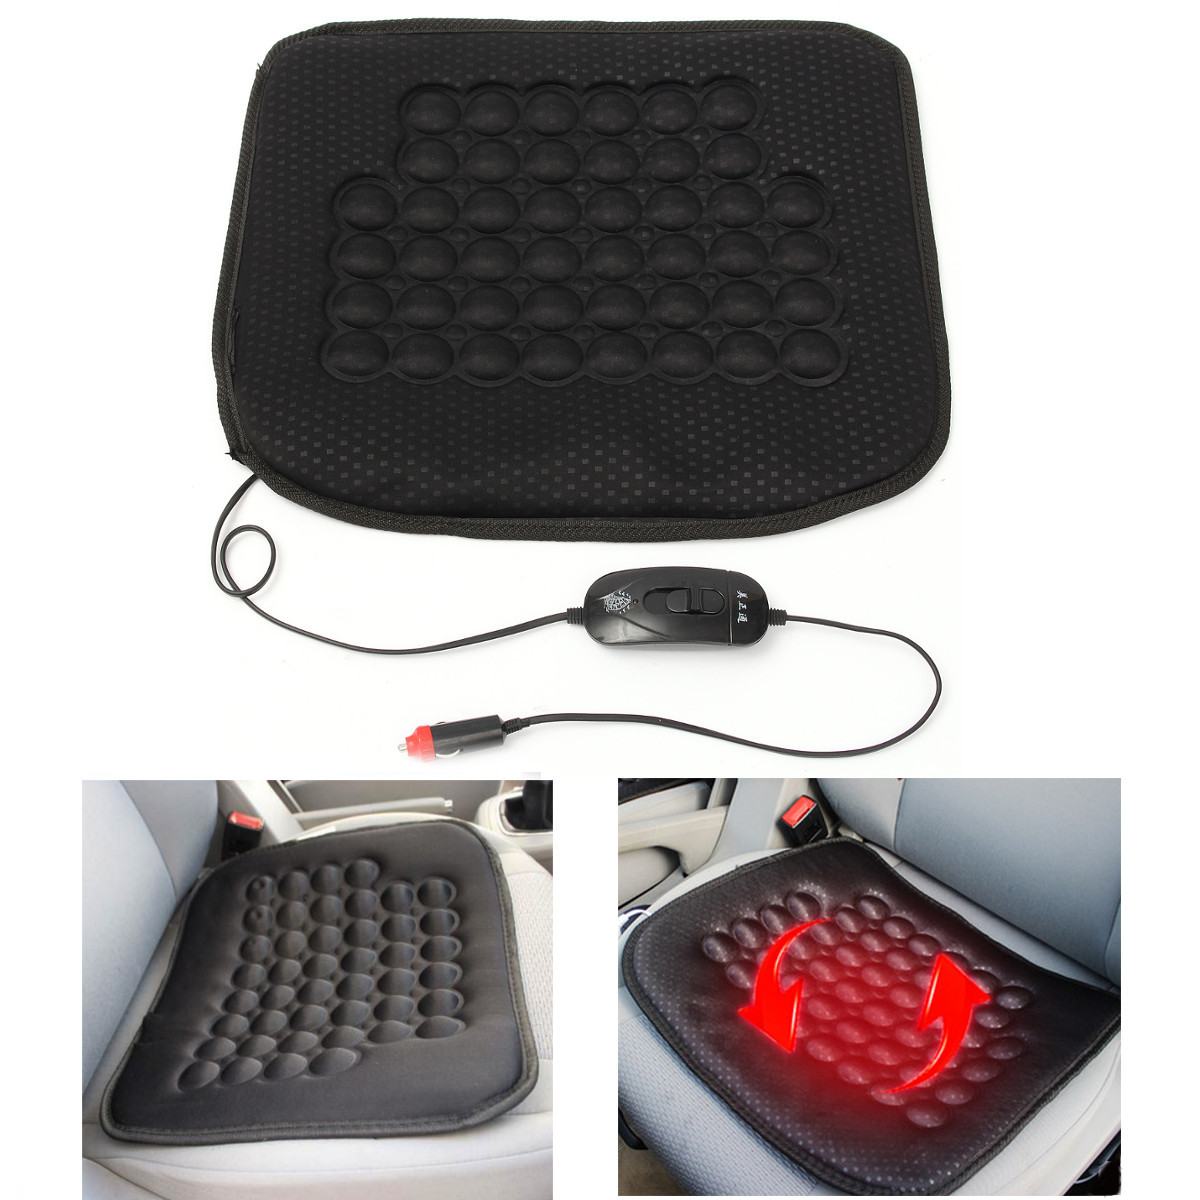 12V 30W Car Front Seat Heated Cushion Hot Cover Warmer Pad for Auto SUV Truck Cold Weather and Winter Driving, Black by